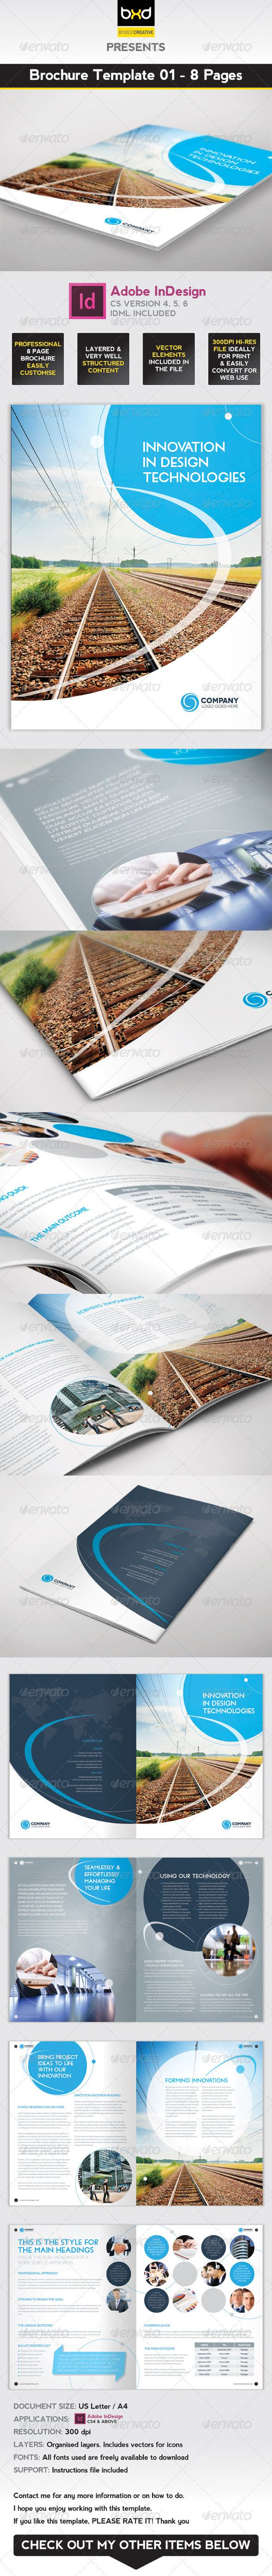 Brochure Template - InDesign 8 Page Layout 01